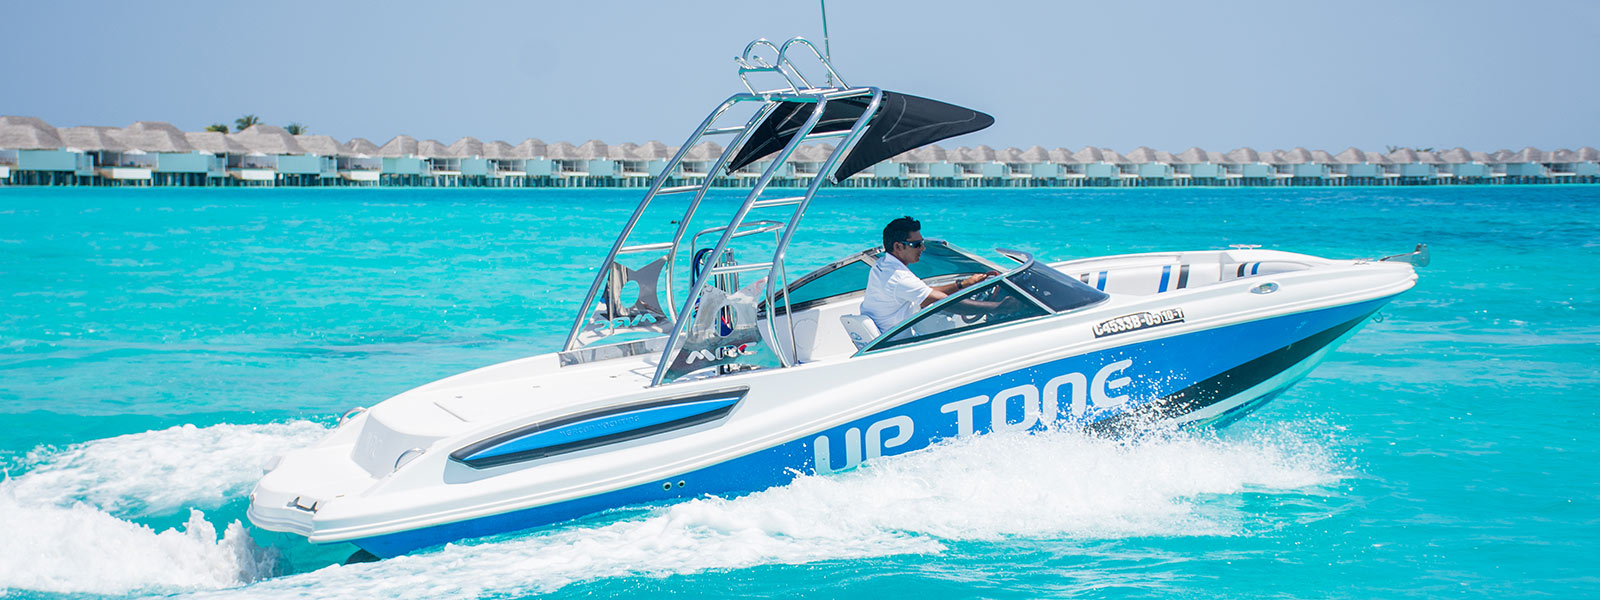 Private boat charter Maldives